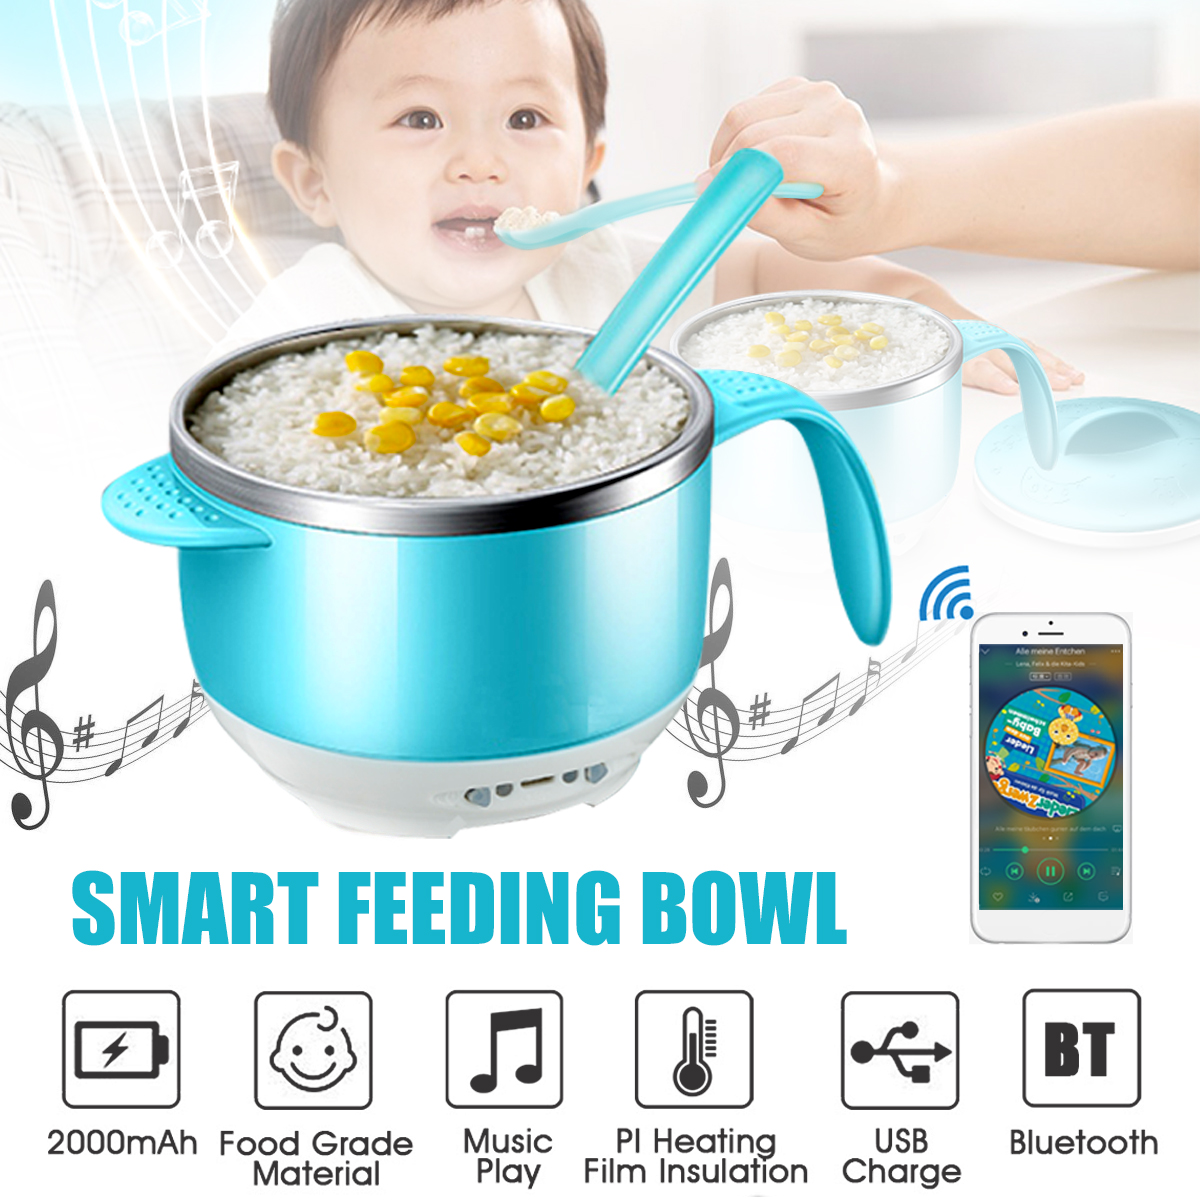 AUGIENB Baby Kid Feeding Insulated Bowl BPA Free Heat-sensing Spoon USB Charge by AUGIENB